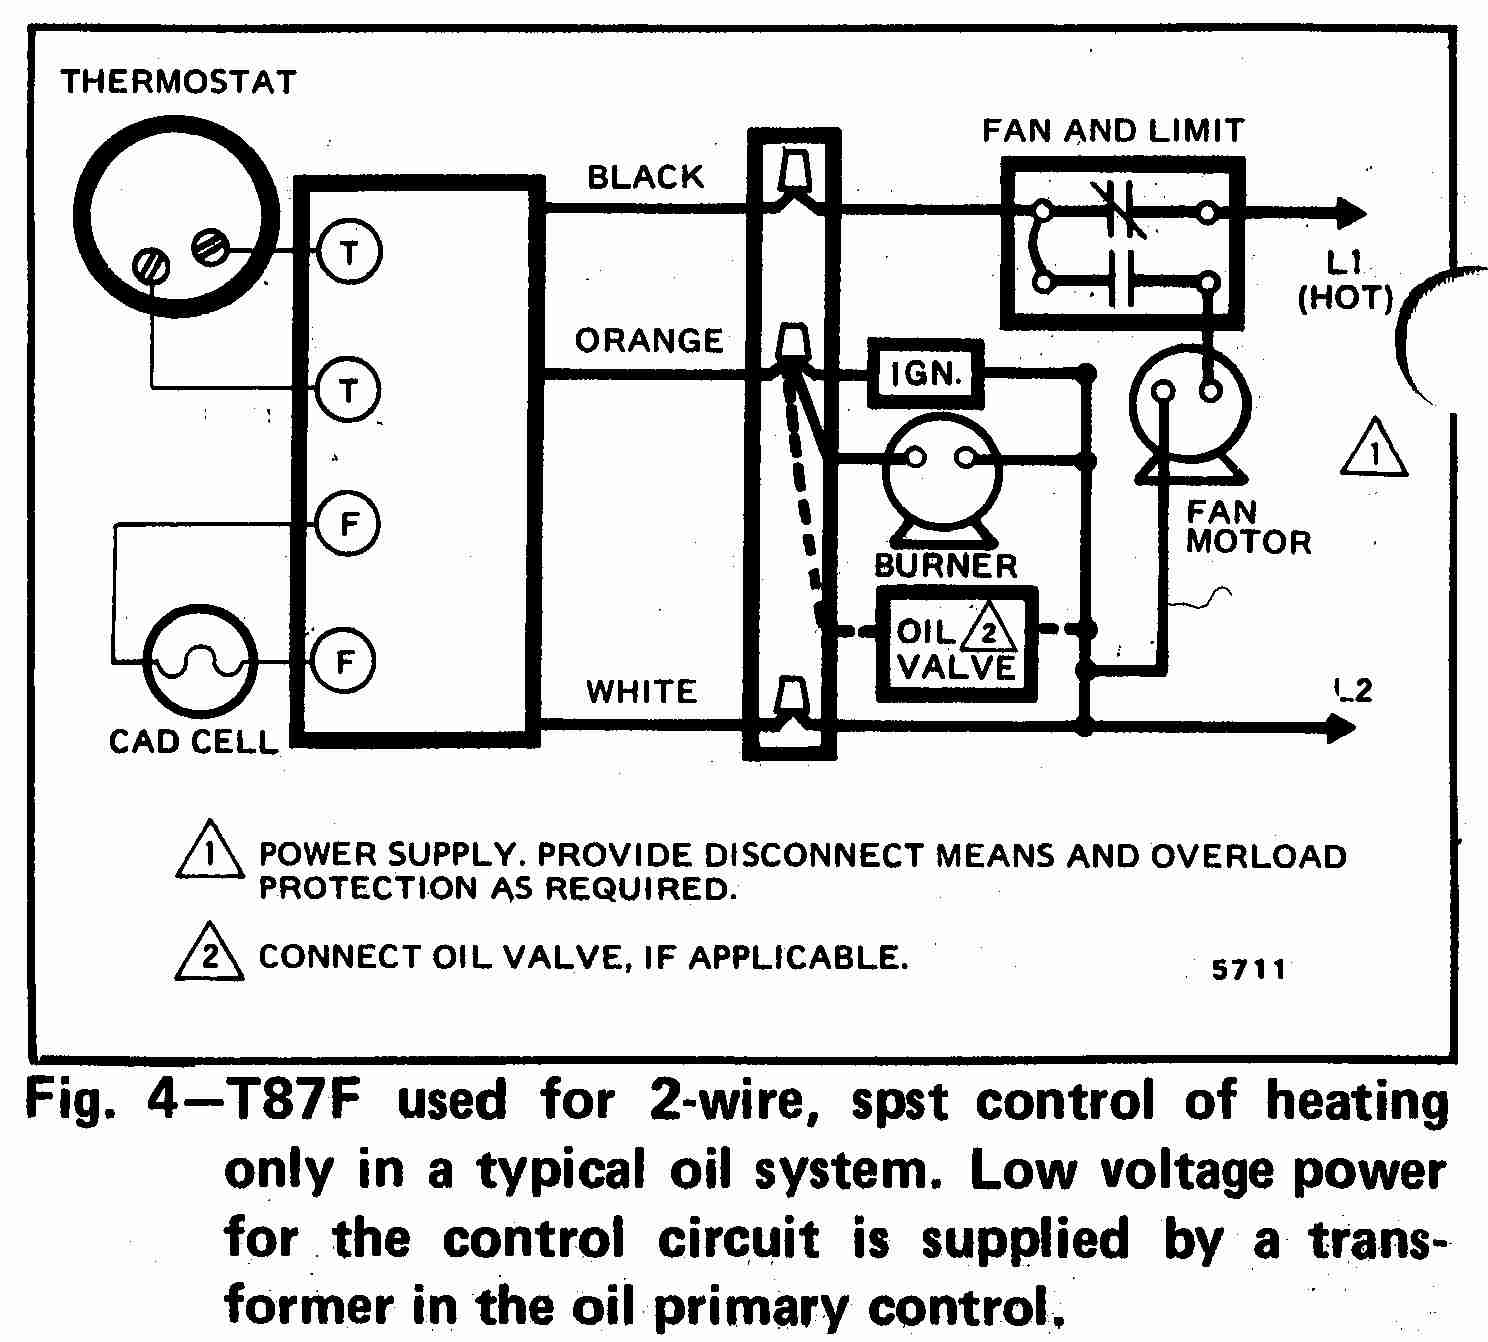 TT_T87F_0002_2W_DJF room thermostat wiring diagrams for hvac systems gas furnace wiring diagram at soozxer.org